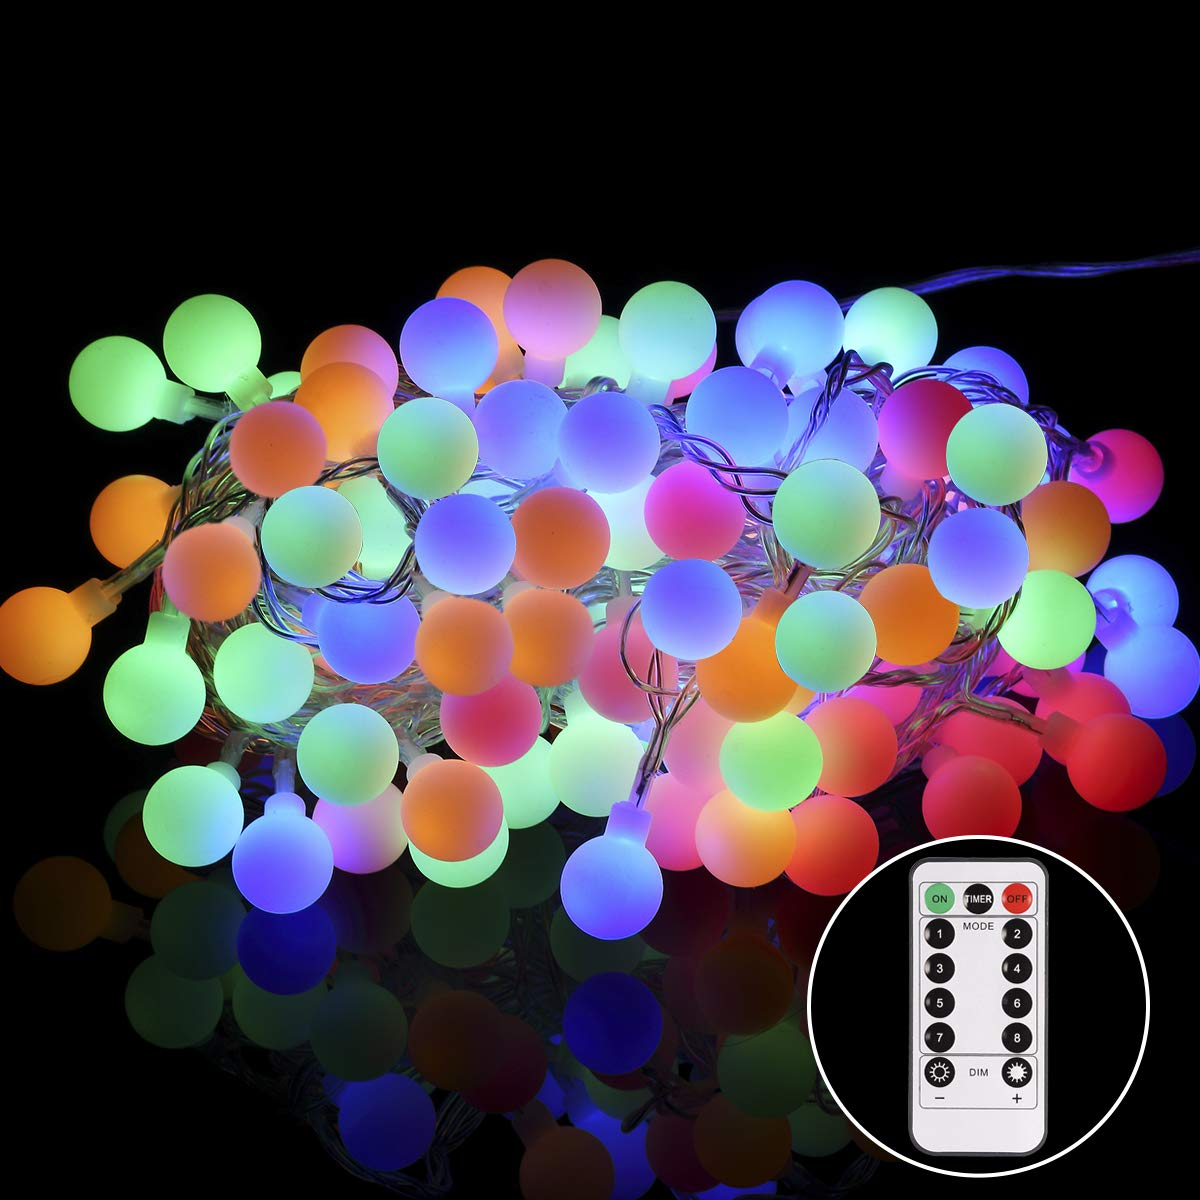 GreenClick LED String Lights with Remote,34Ft 100 LEDs Dimmable Globe String Lights Outdoor, UL Listed Plug in String Lights,Colorful Decorative Ball Lights for Bedroom,Xmas,Patio,Wedding,Parties by GreenClick